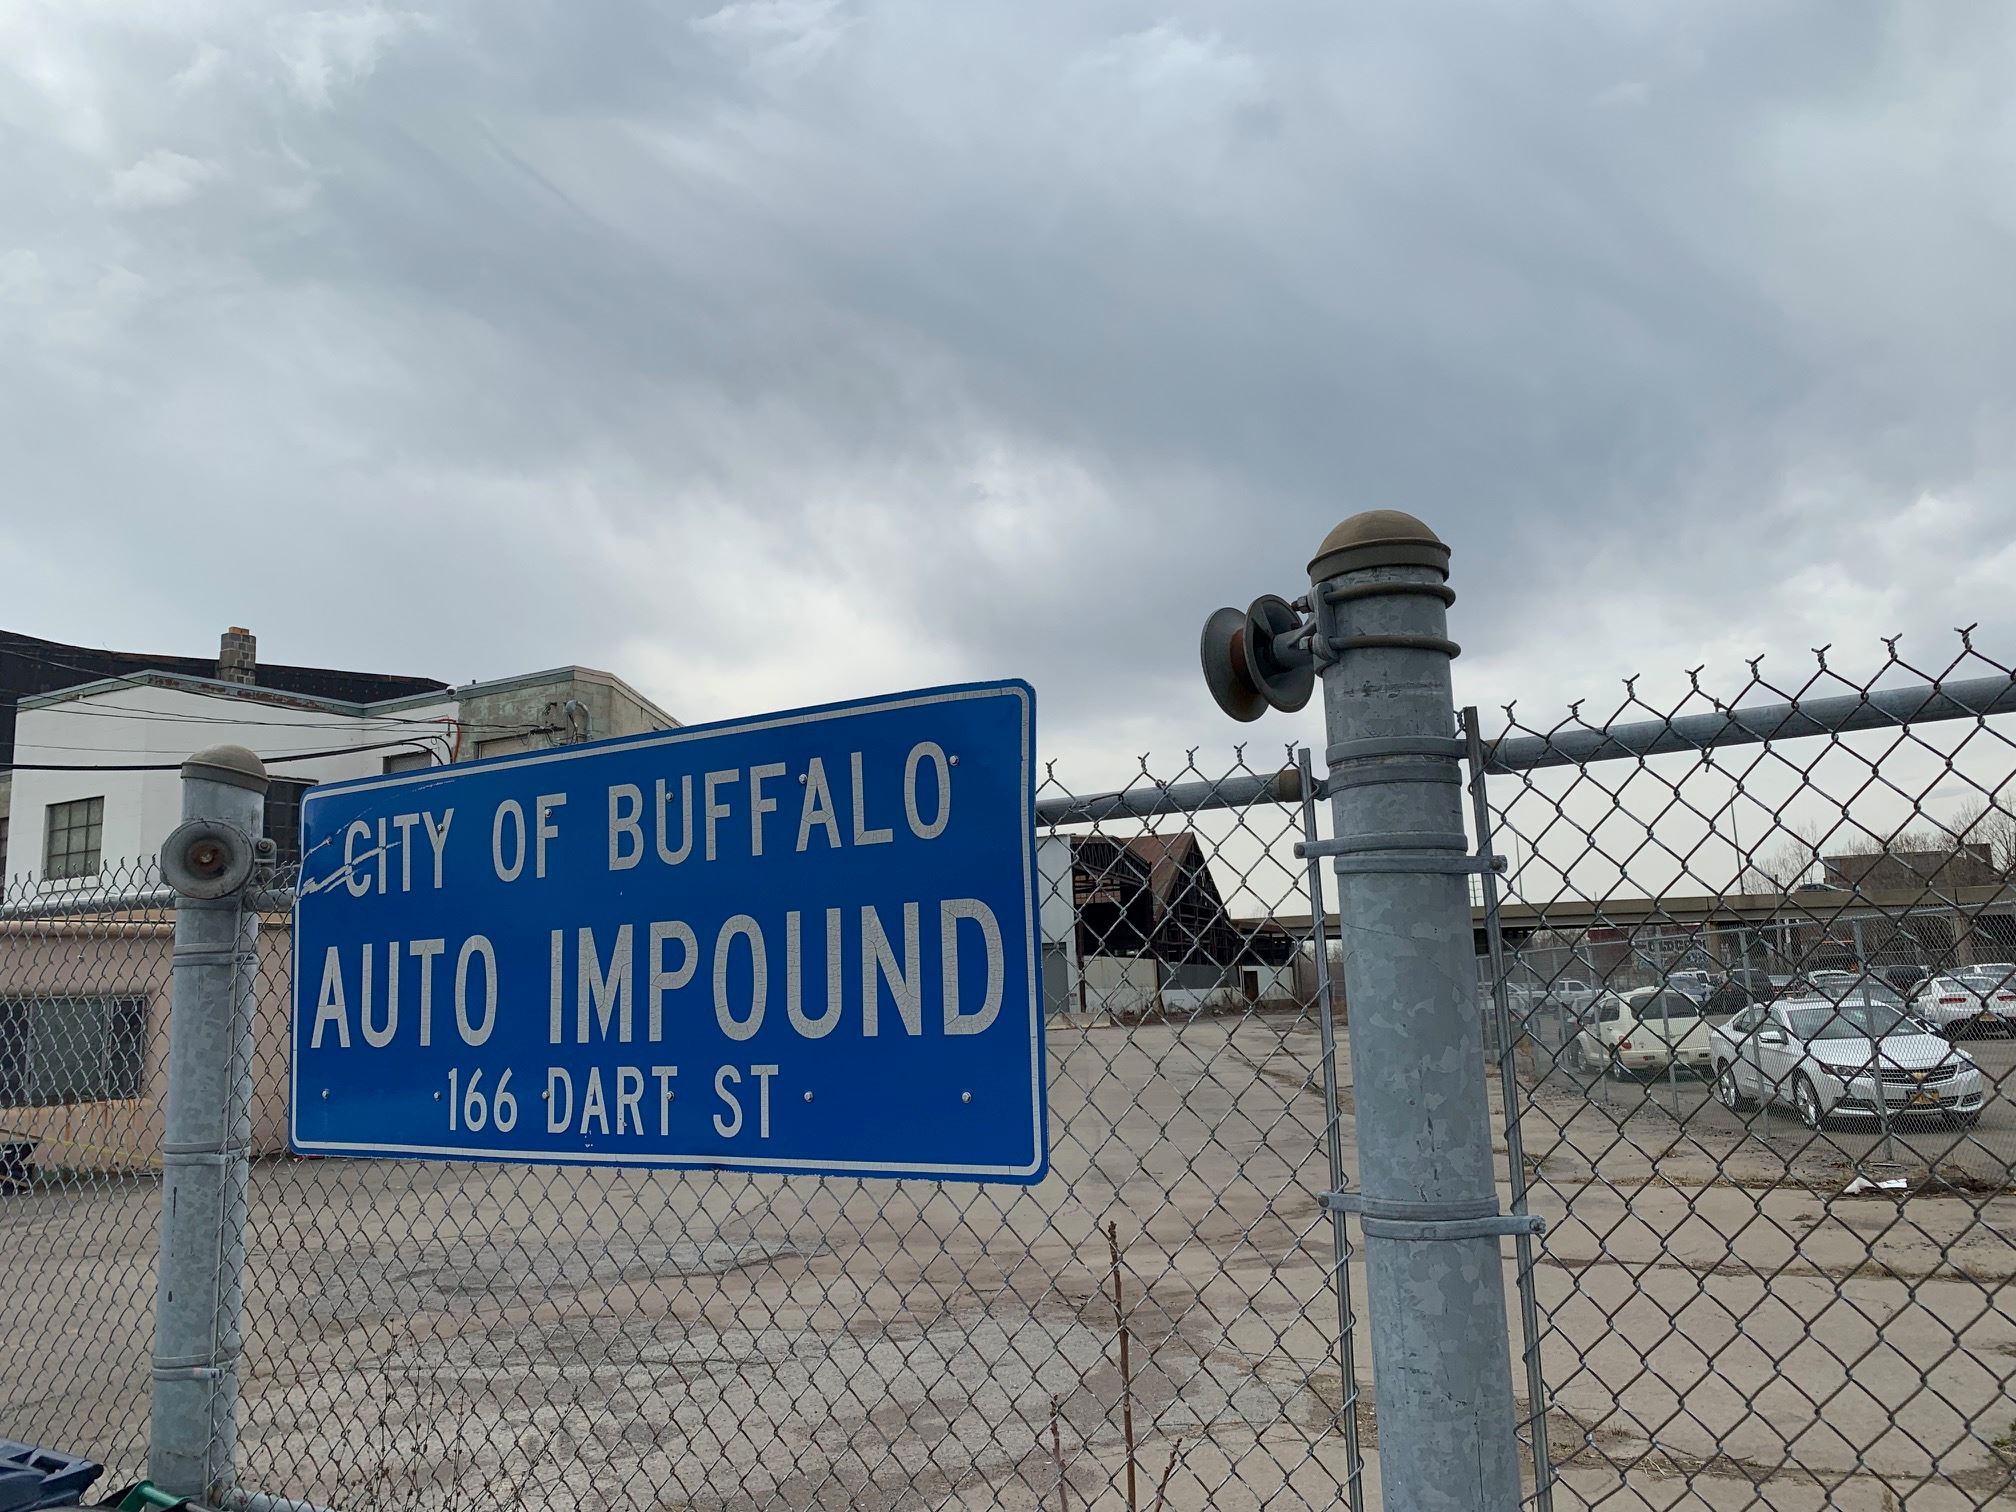 Dart St Impound sign